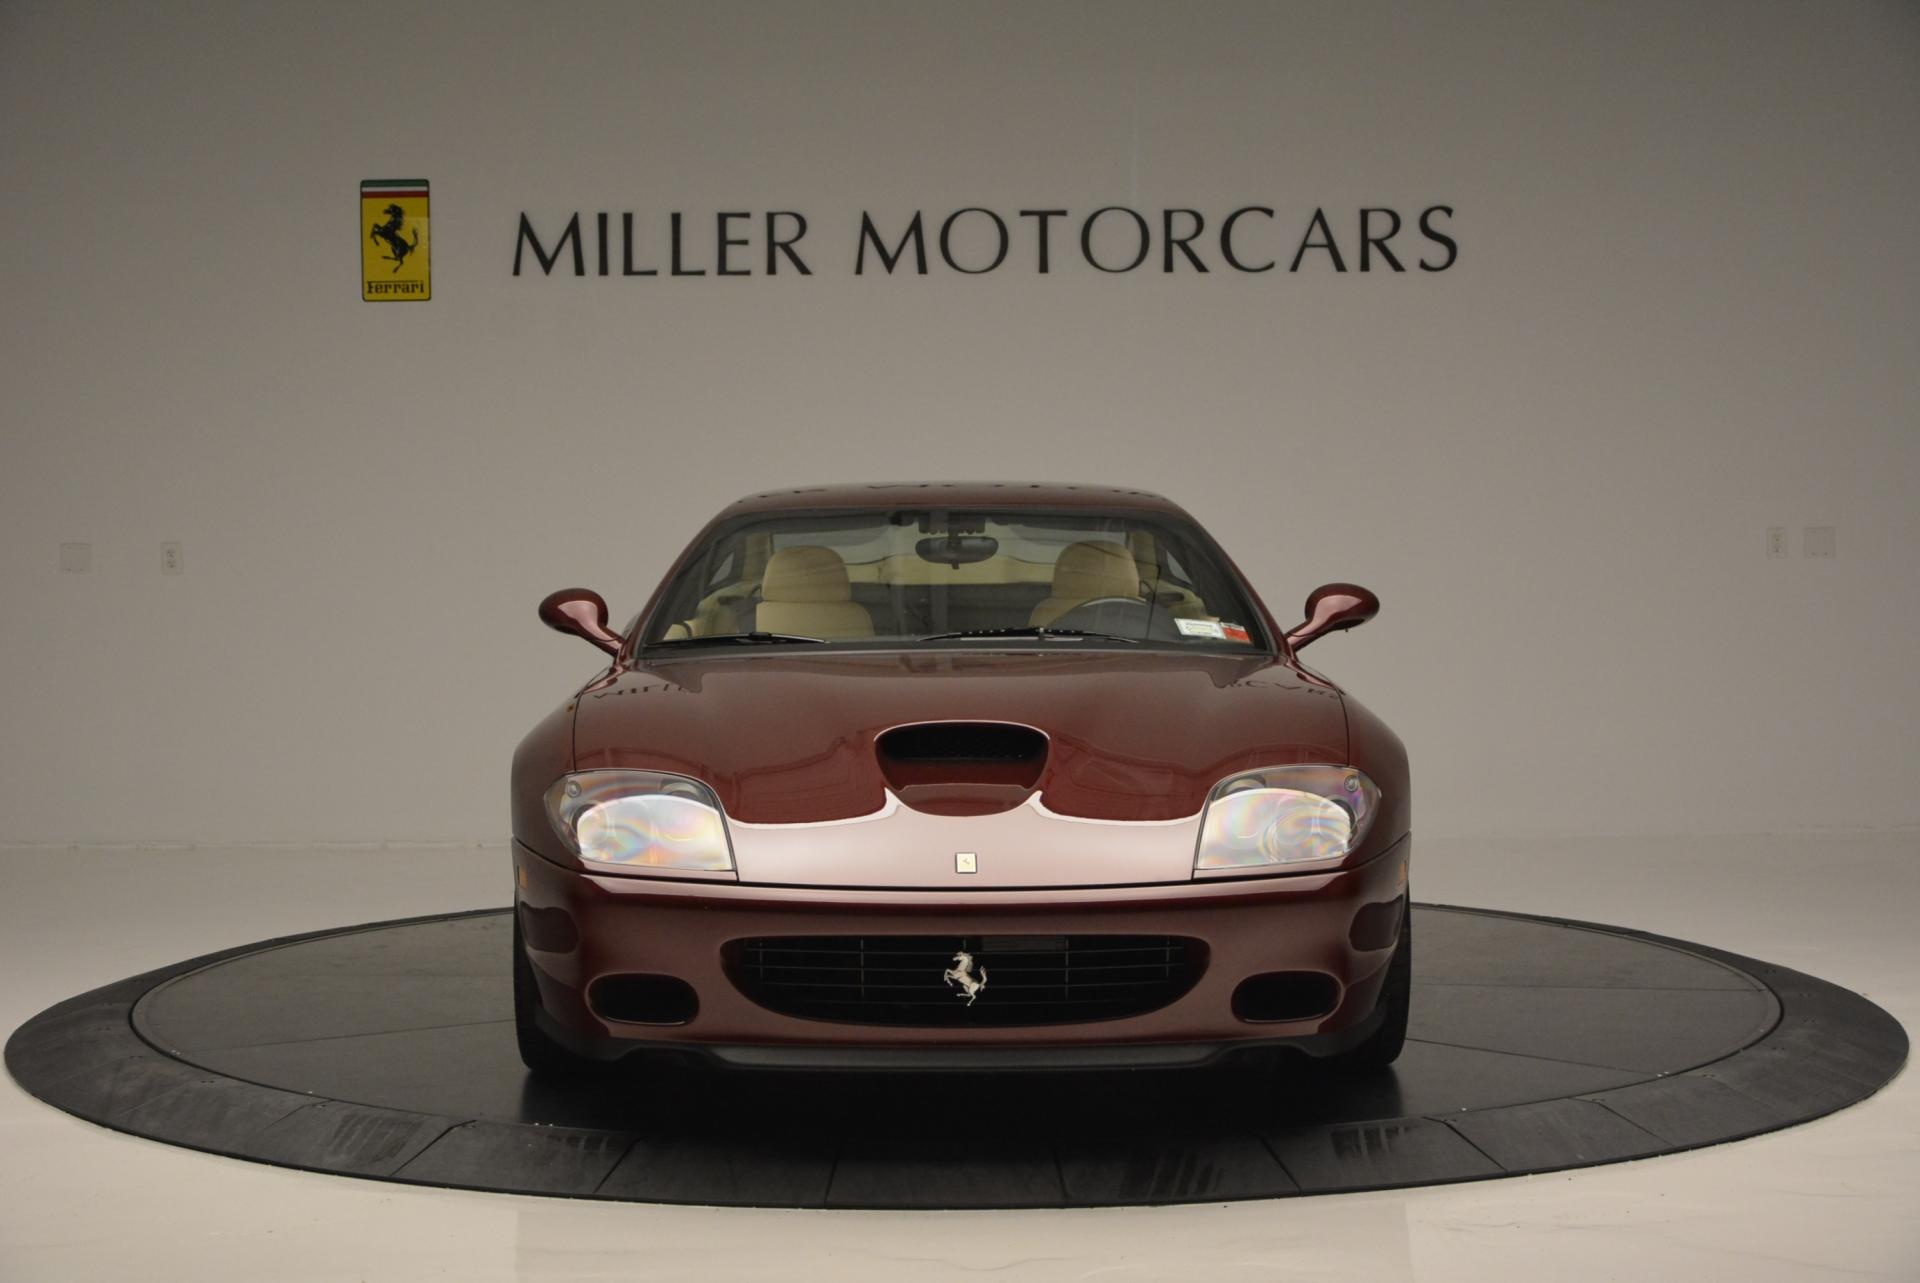 Used 2003 Ferrari 575M Maranello 6-Speed Manual For Sale In Westport, CT 143_p12